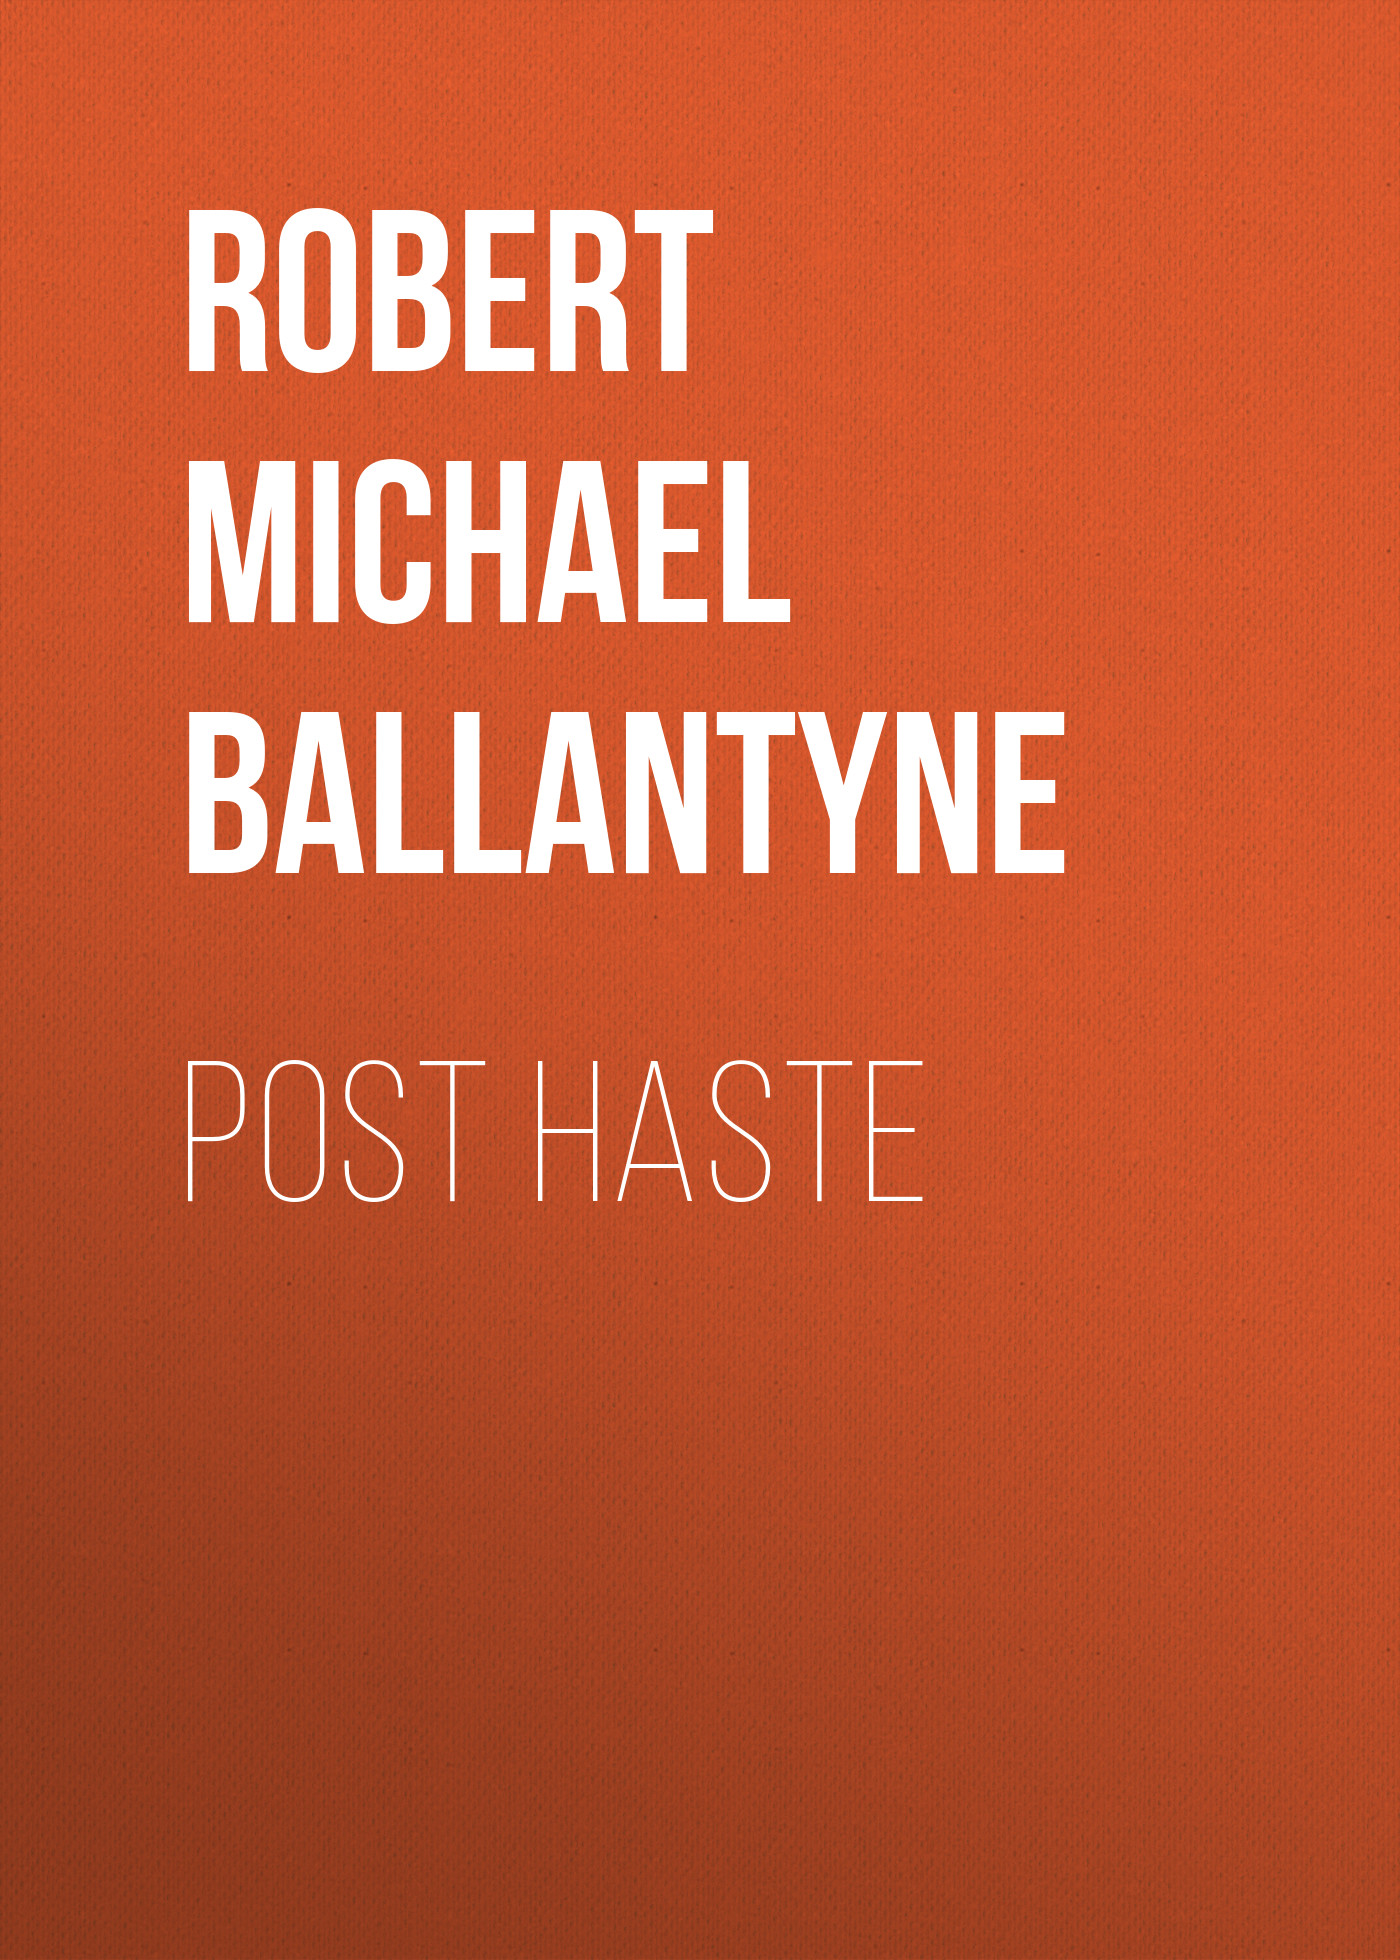 лучшая цена Robert Michael Ballantyne Post Haste